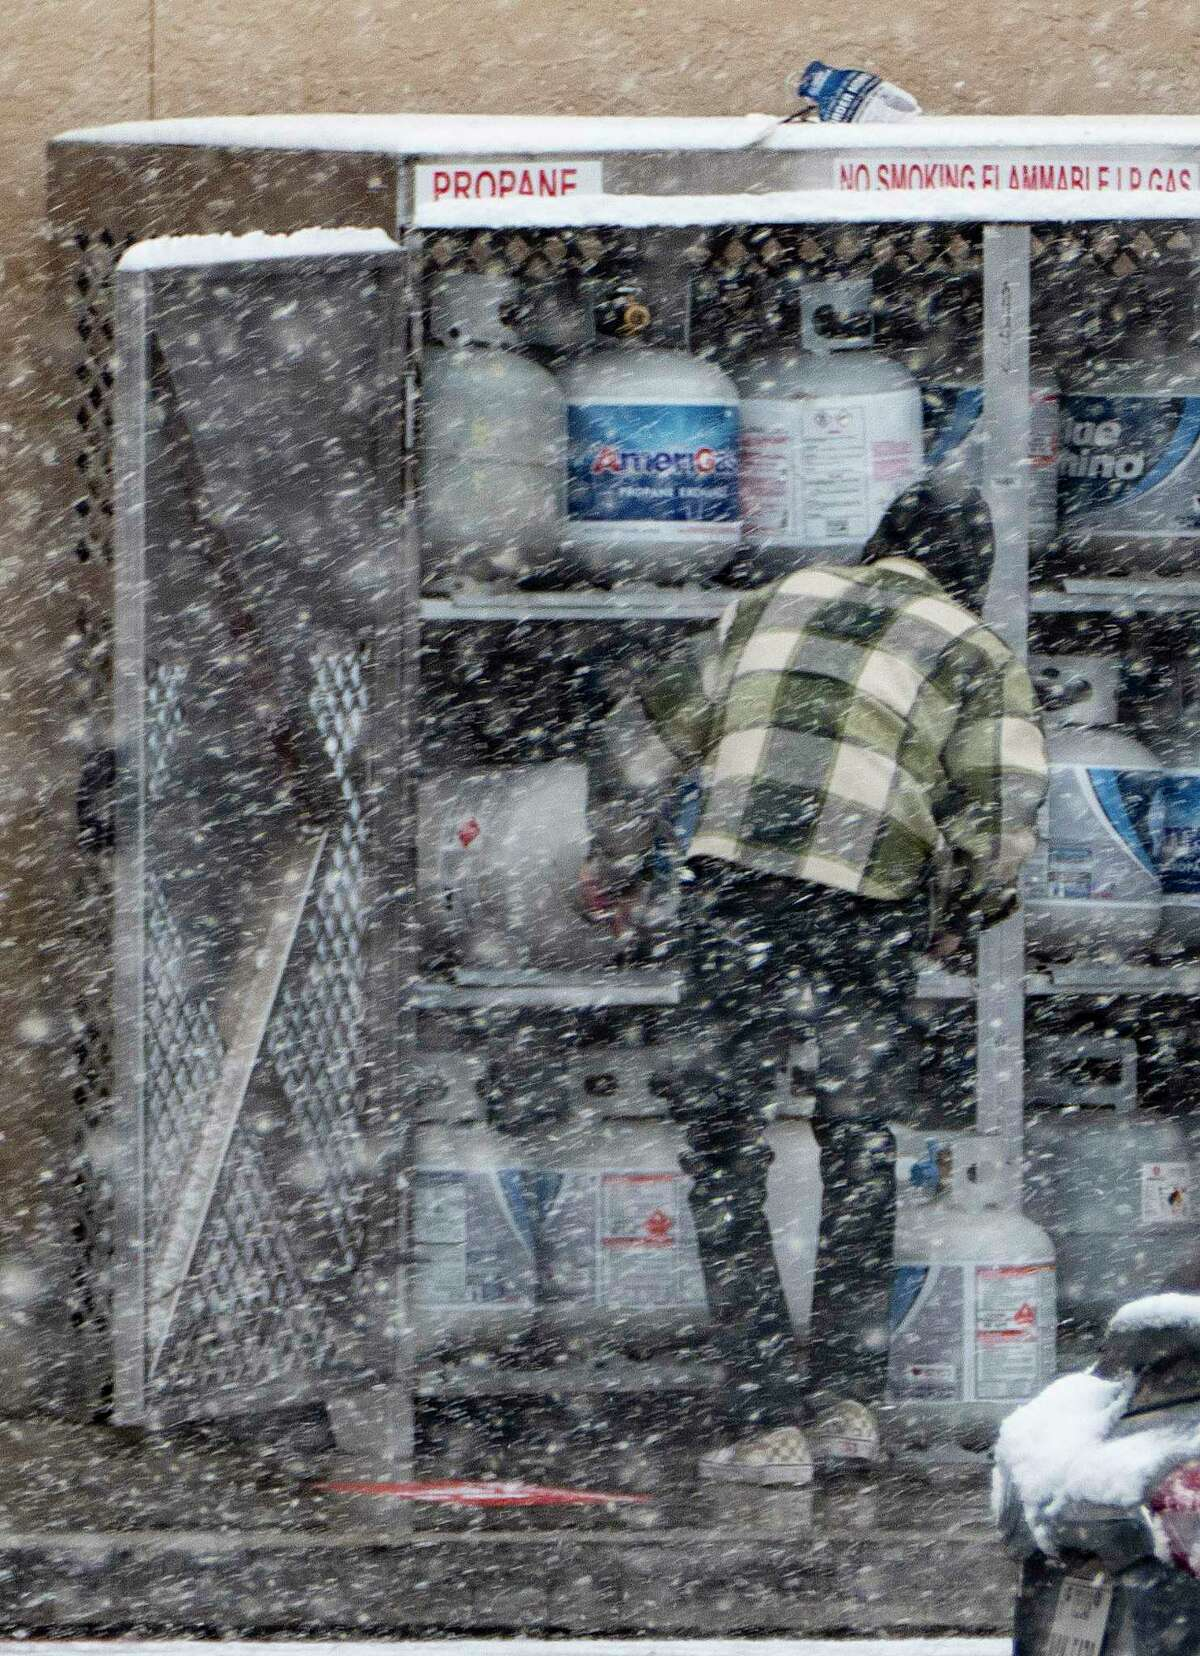 A man buys propane at the H-E-B at West Avenue and Blanco Road as a brisk snow falls on Thursday morning, Feb. 18, 2021. Parts of San Antonio lost electricity and water service because of the severe winter weather this week.